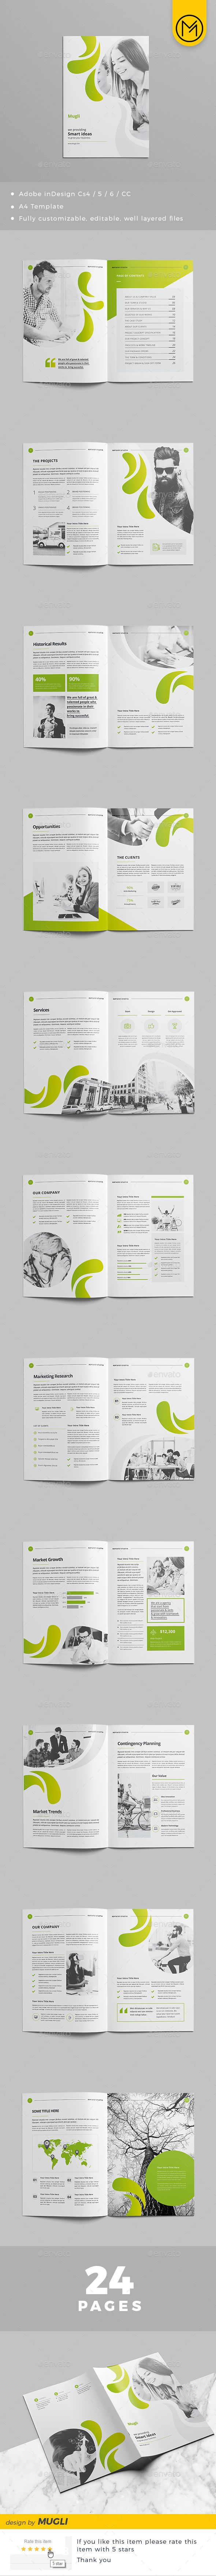 Brochure Design 2018 #corporate #a4 • Download ➝ https://graphicriver.net/item/brochure-design-2018/21355396?ref=pxcr